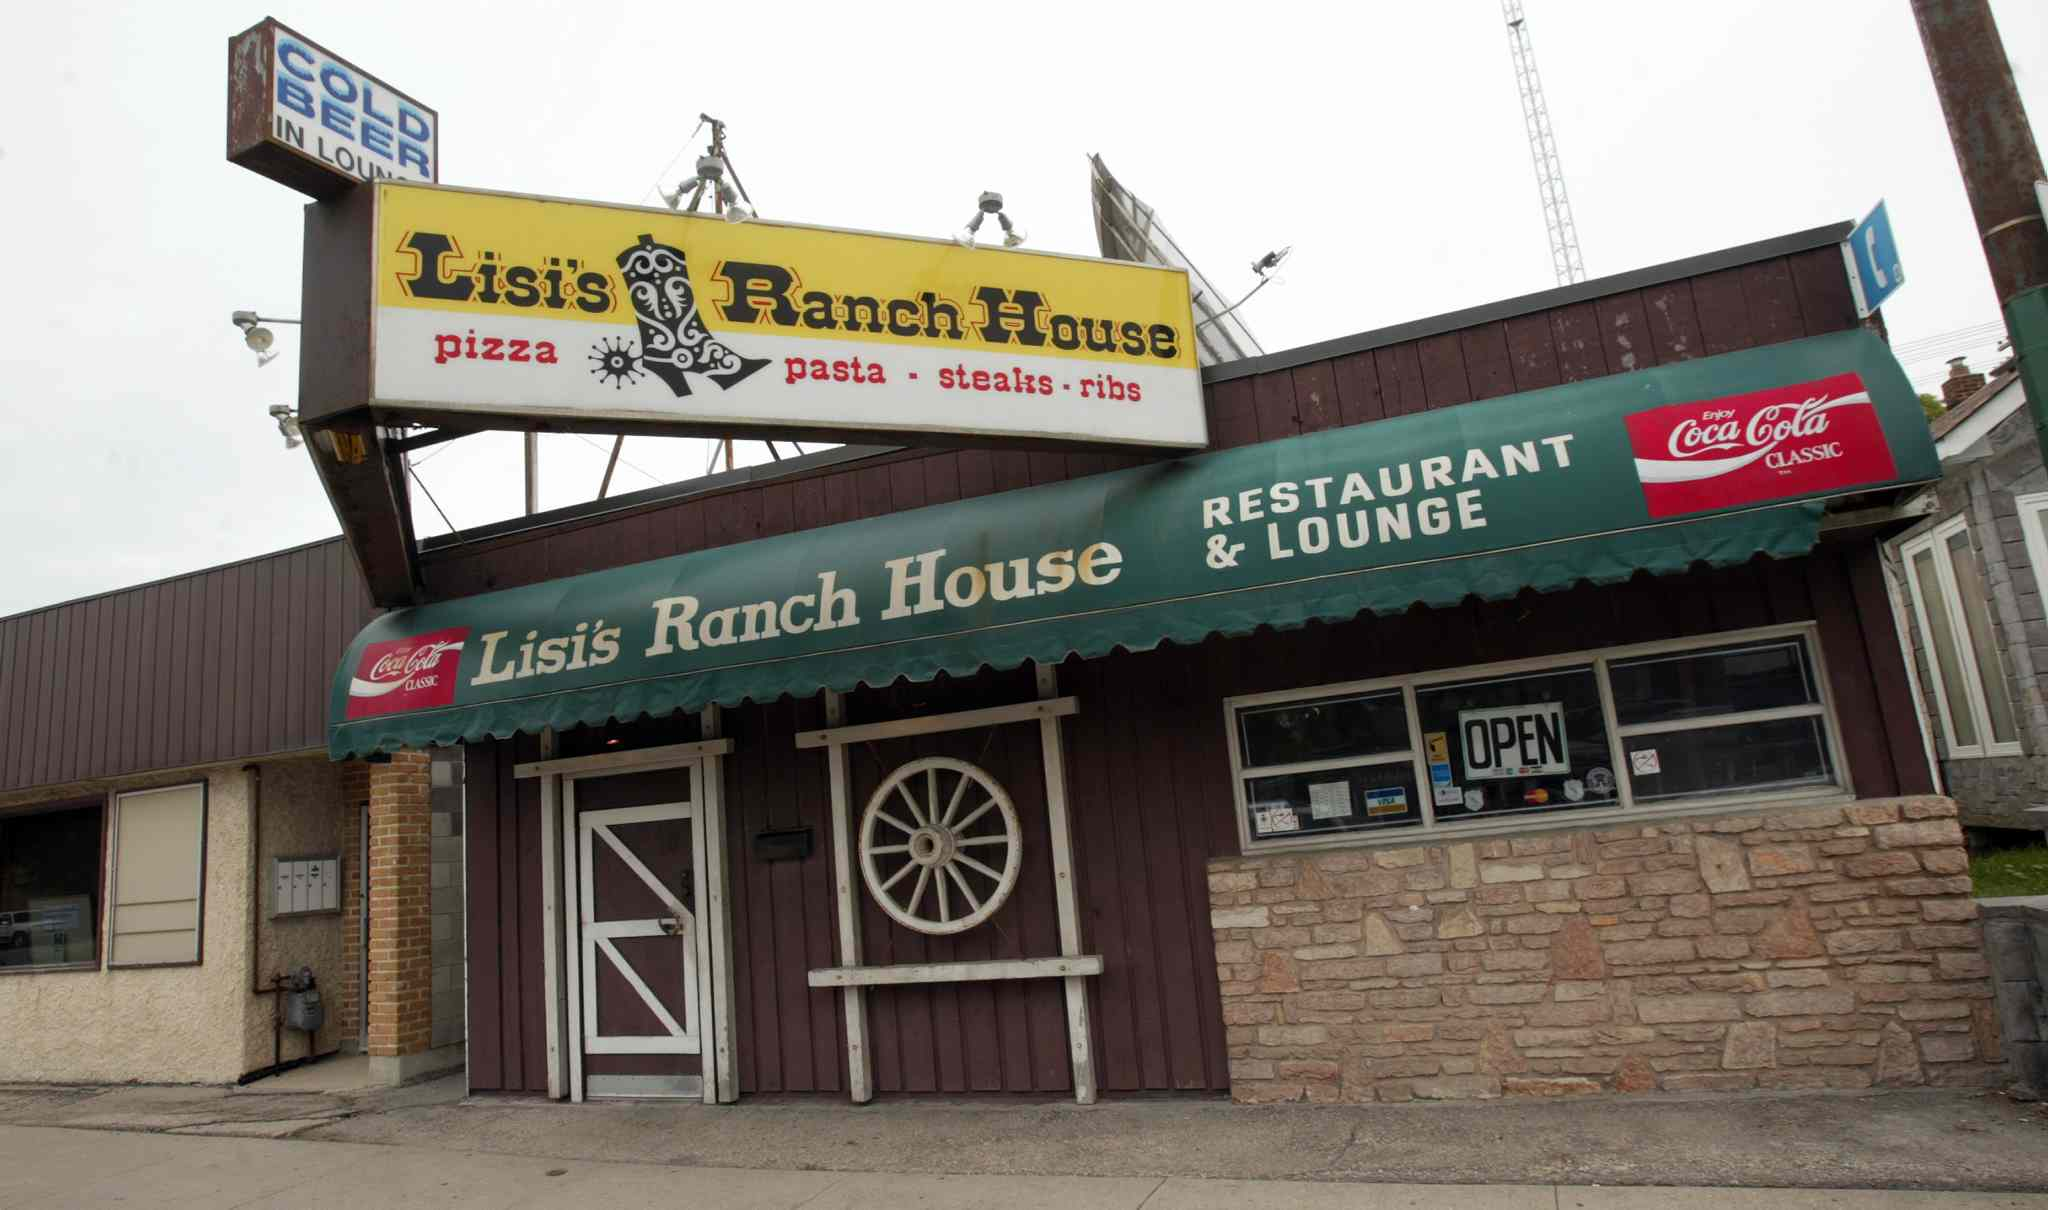 Lisi's Ranch House Restaurant on Main. (Phil Hossack / Winnipeg Free Press files)